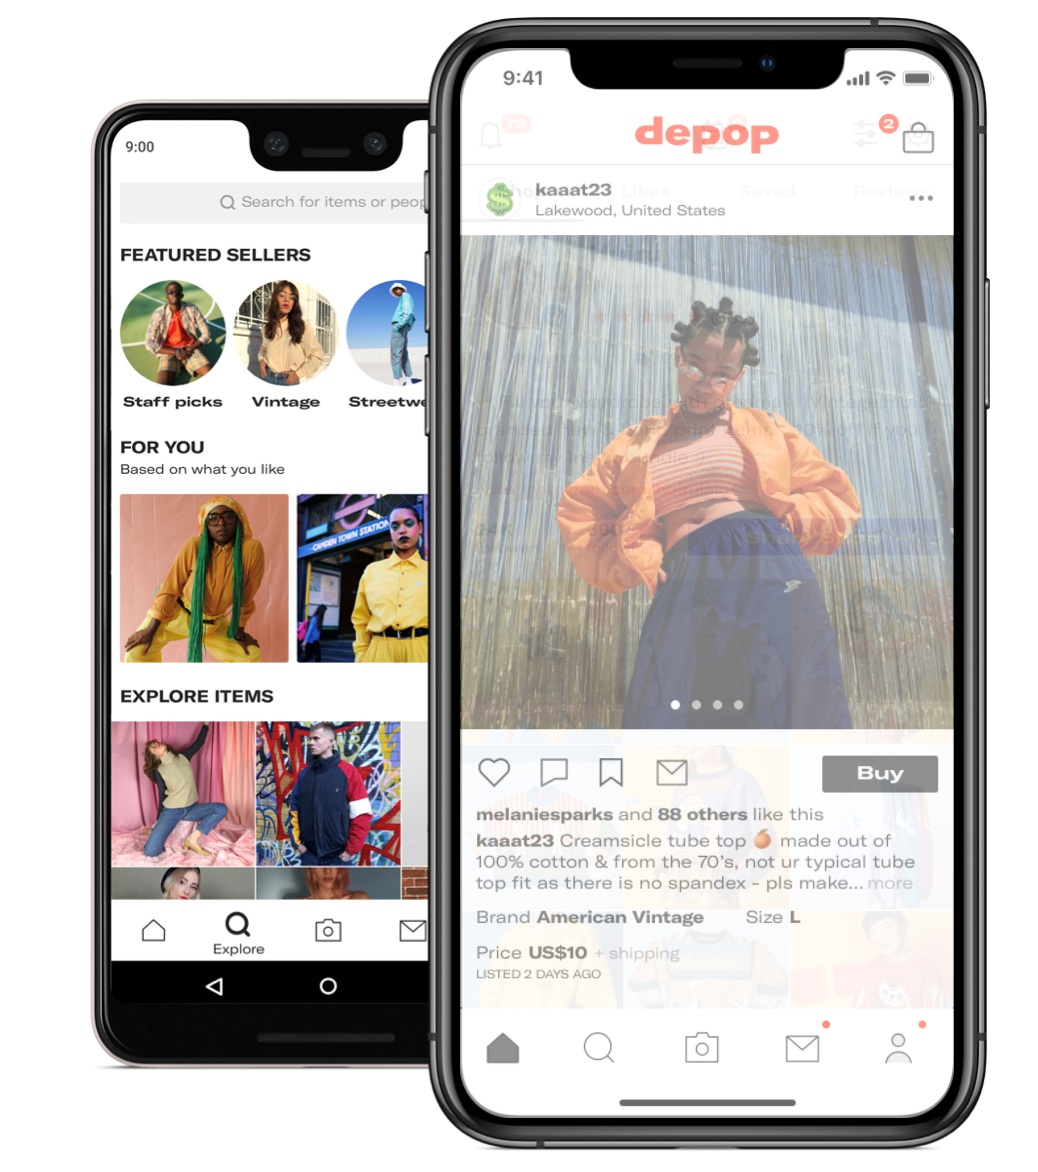 7551793ad Depop: Depop is mostly known in this kind of inner, lowkey, indie cool-kid  circle. Although it's officially an app and not a website, Depop has got it  all ...